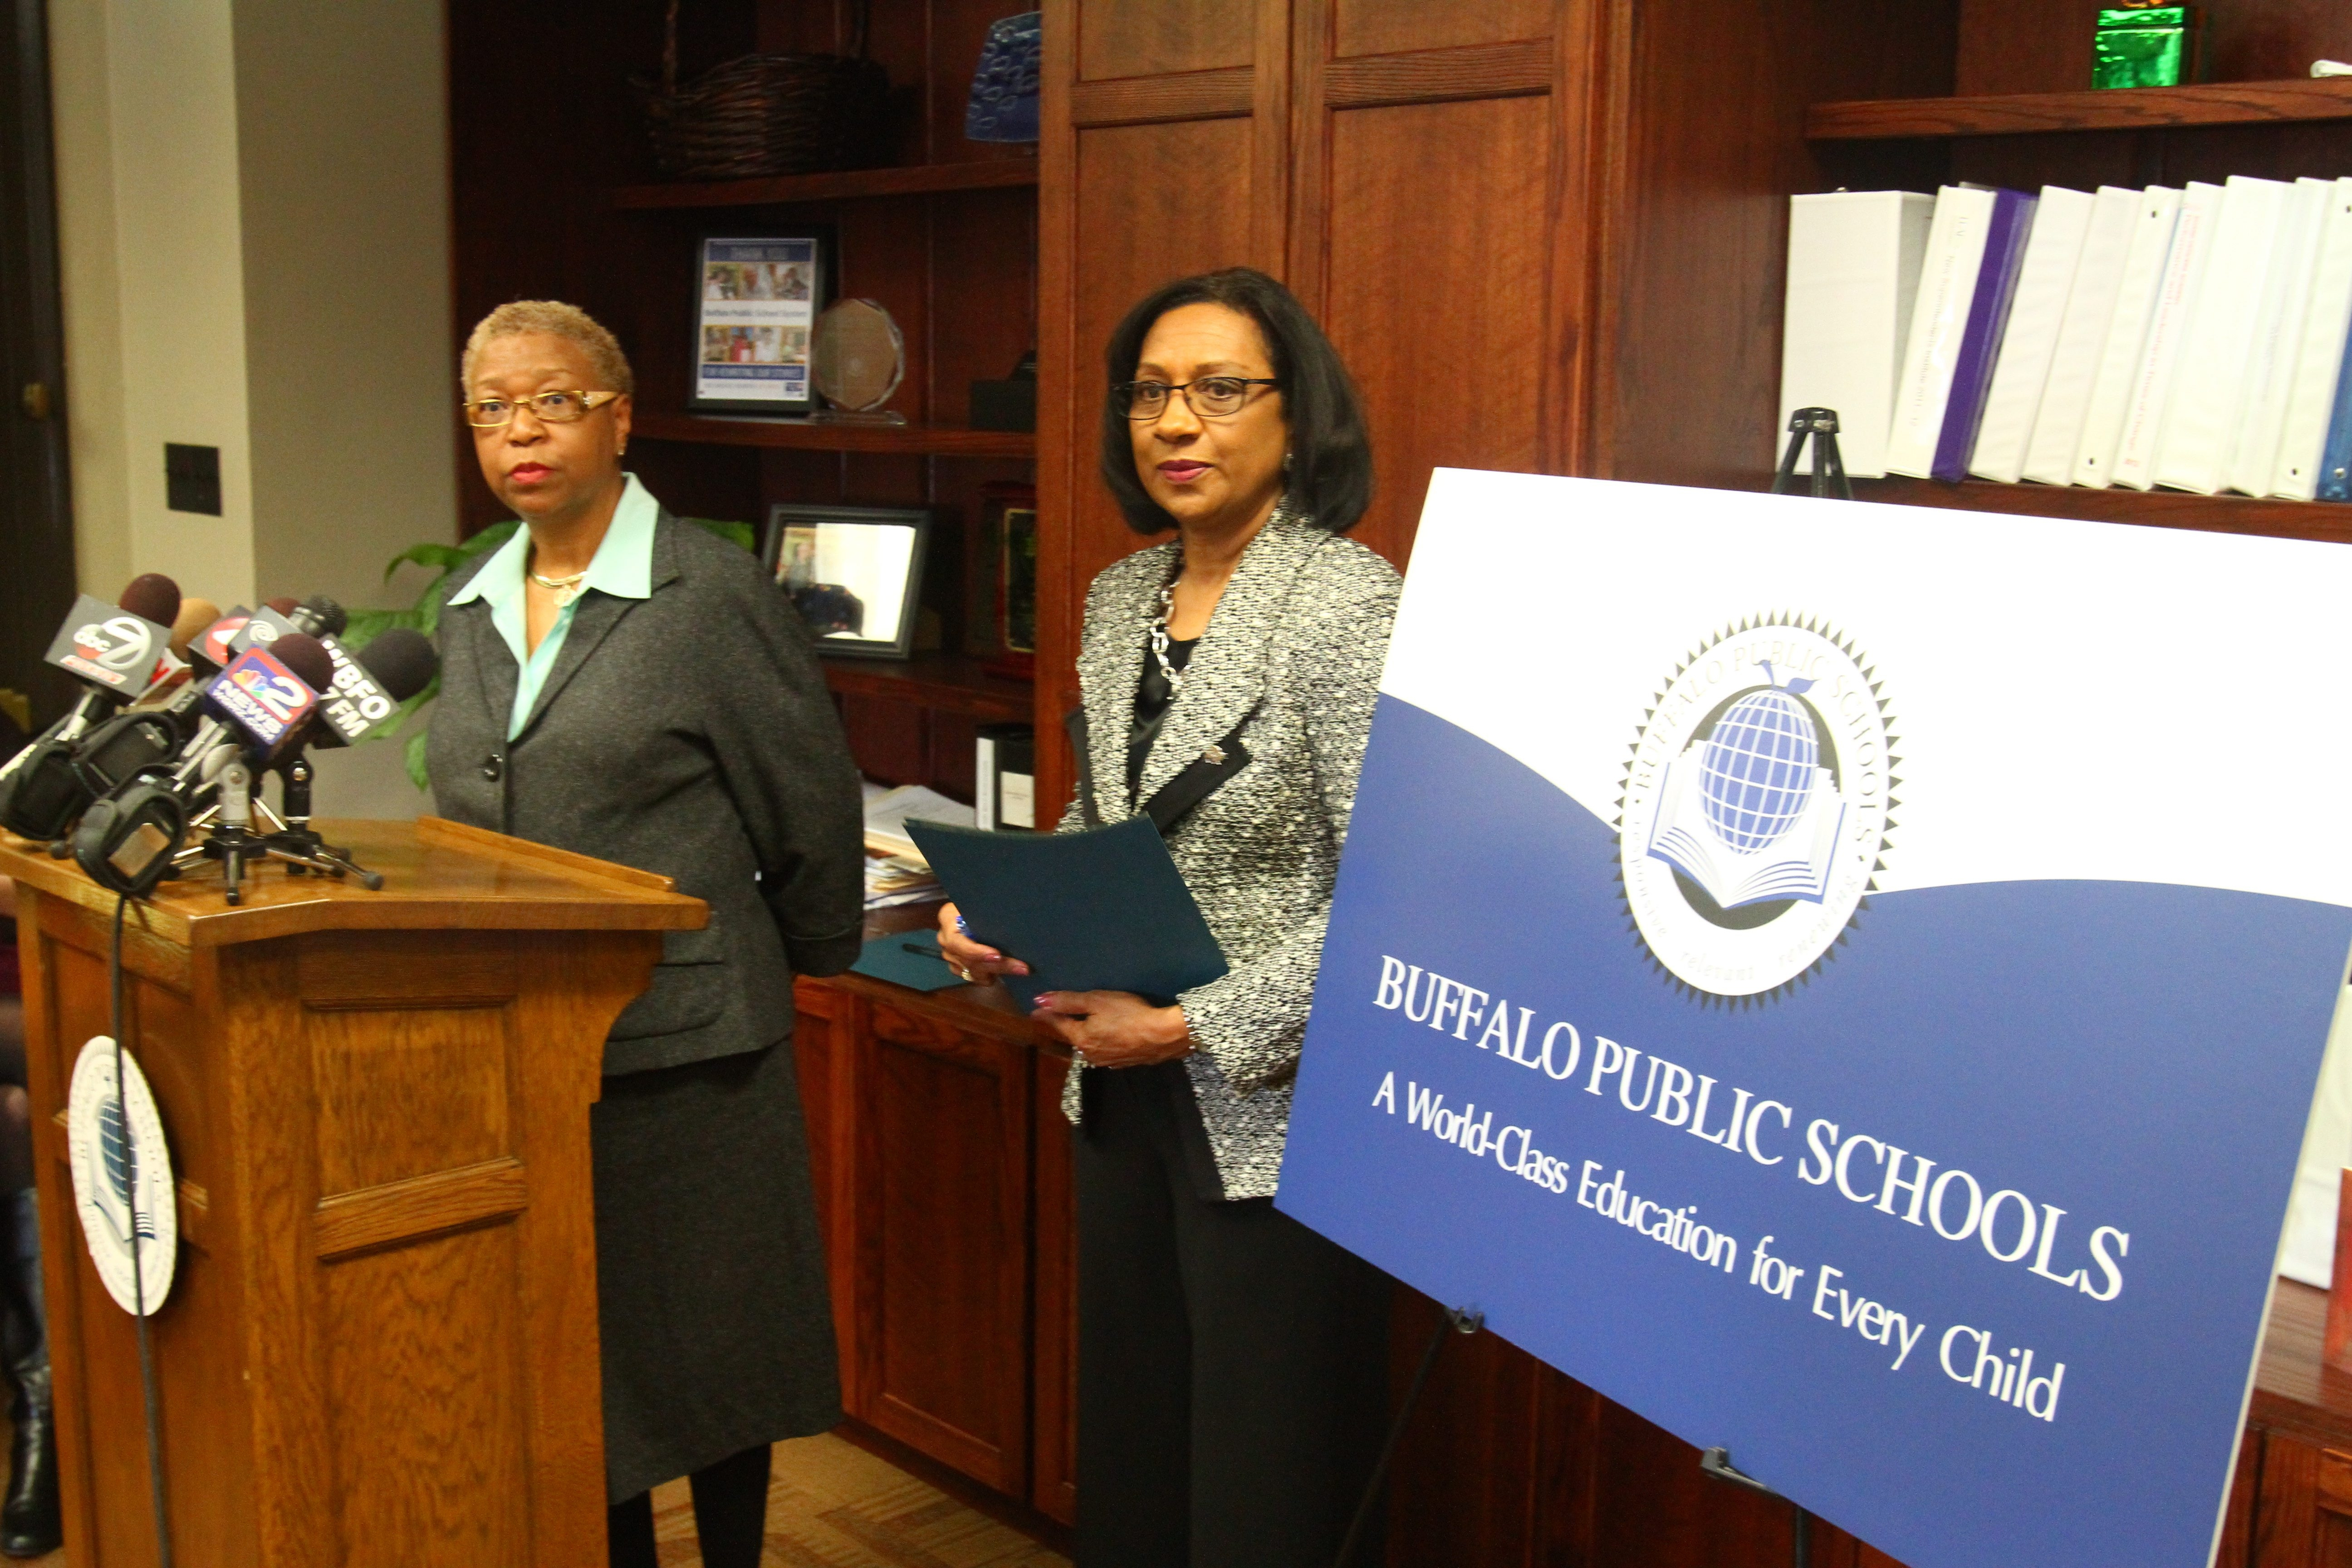 Return of Mary Guinn to schools is under fire.